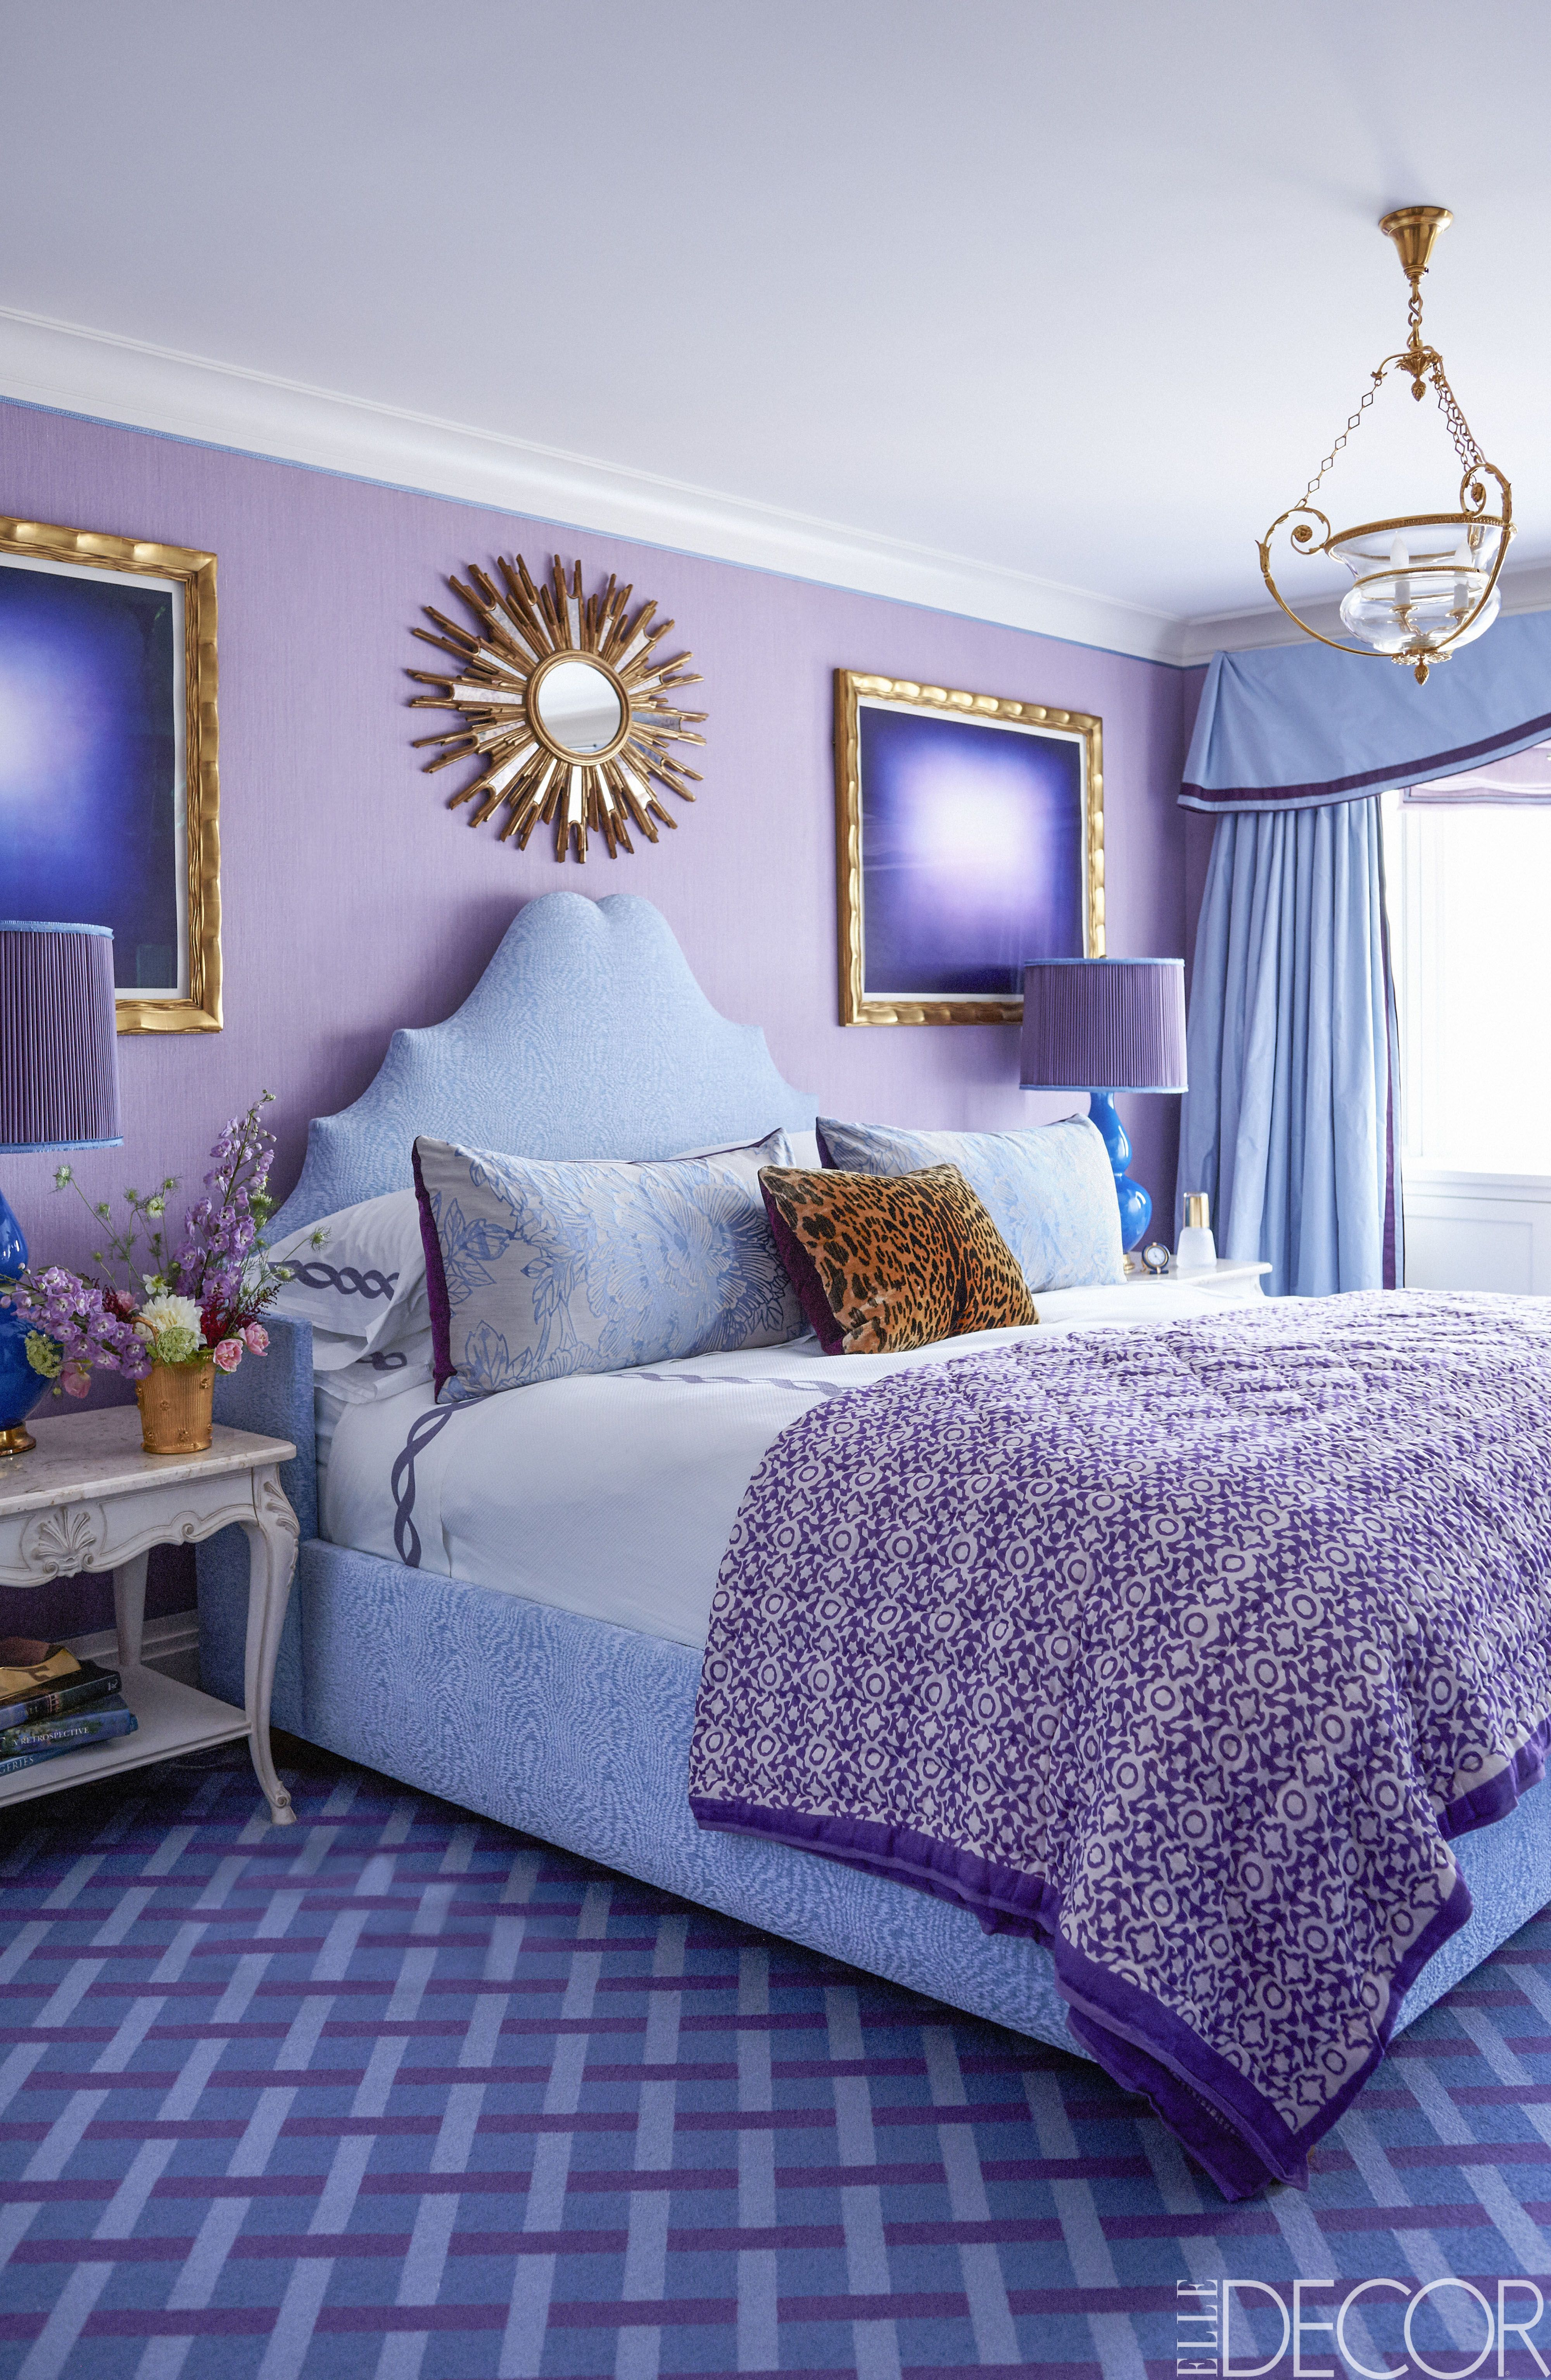 25 Purple Room Decorating Ideas - How To Use Purple Walls with regard to Alvis Traditional Metal Wall Decor (Image 1 of 30)